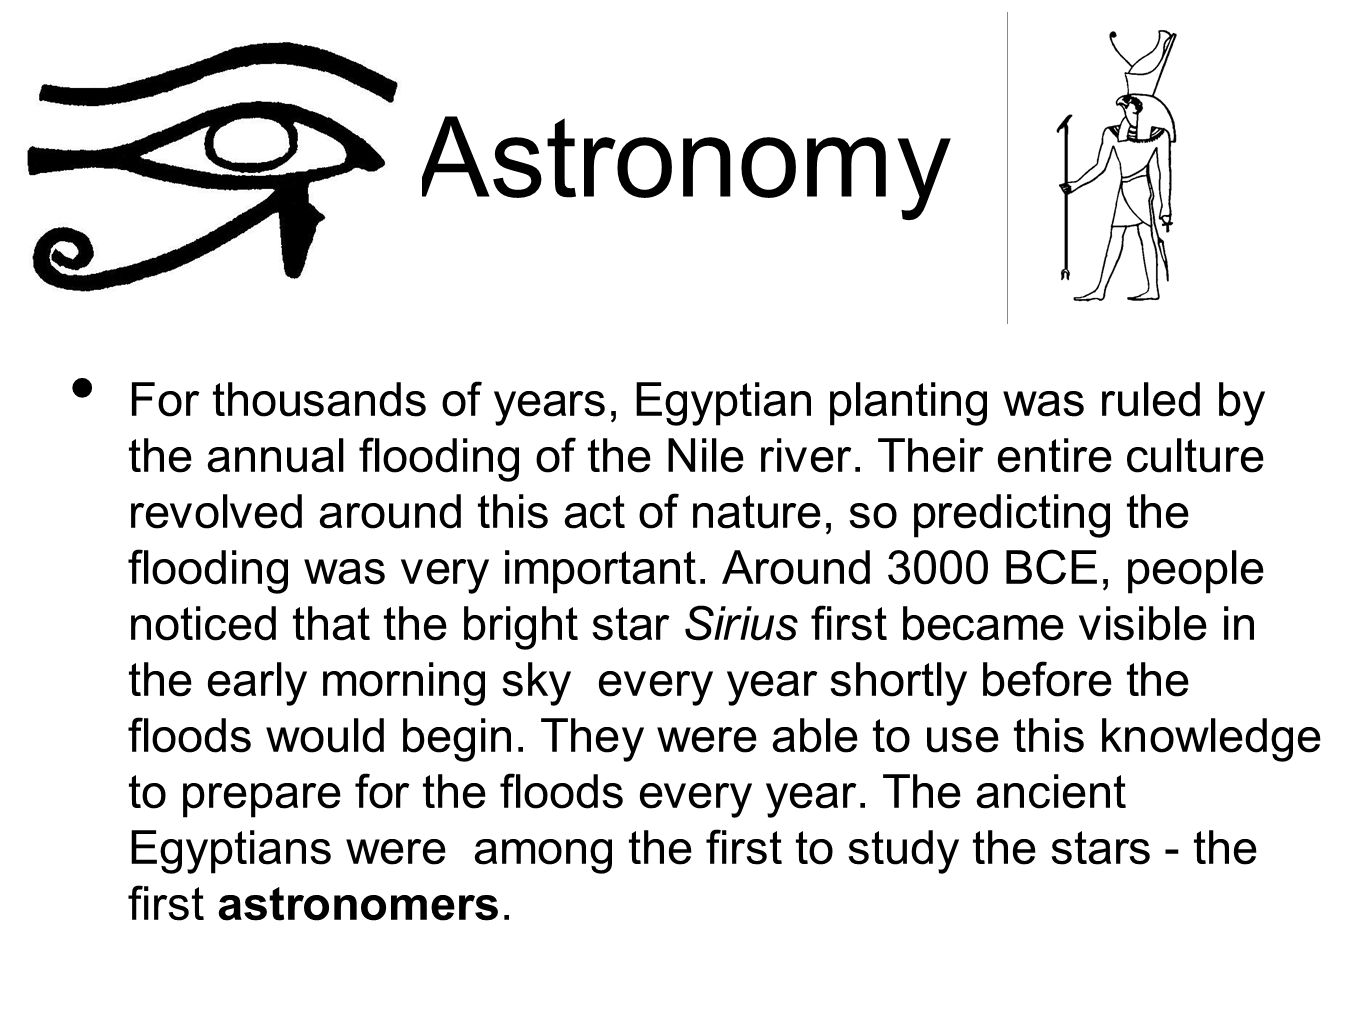 Astronomy For thousands of years, Egyptian planting was ruled by the annual flooding of the Nile river. Their entire culture revolved around this act